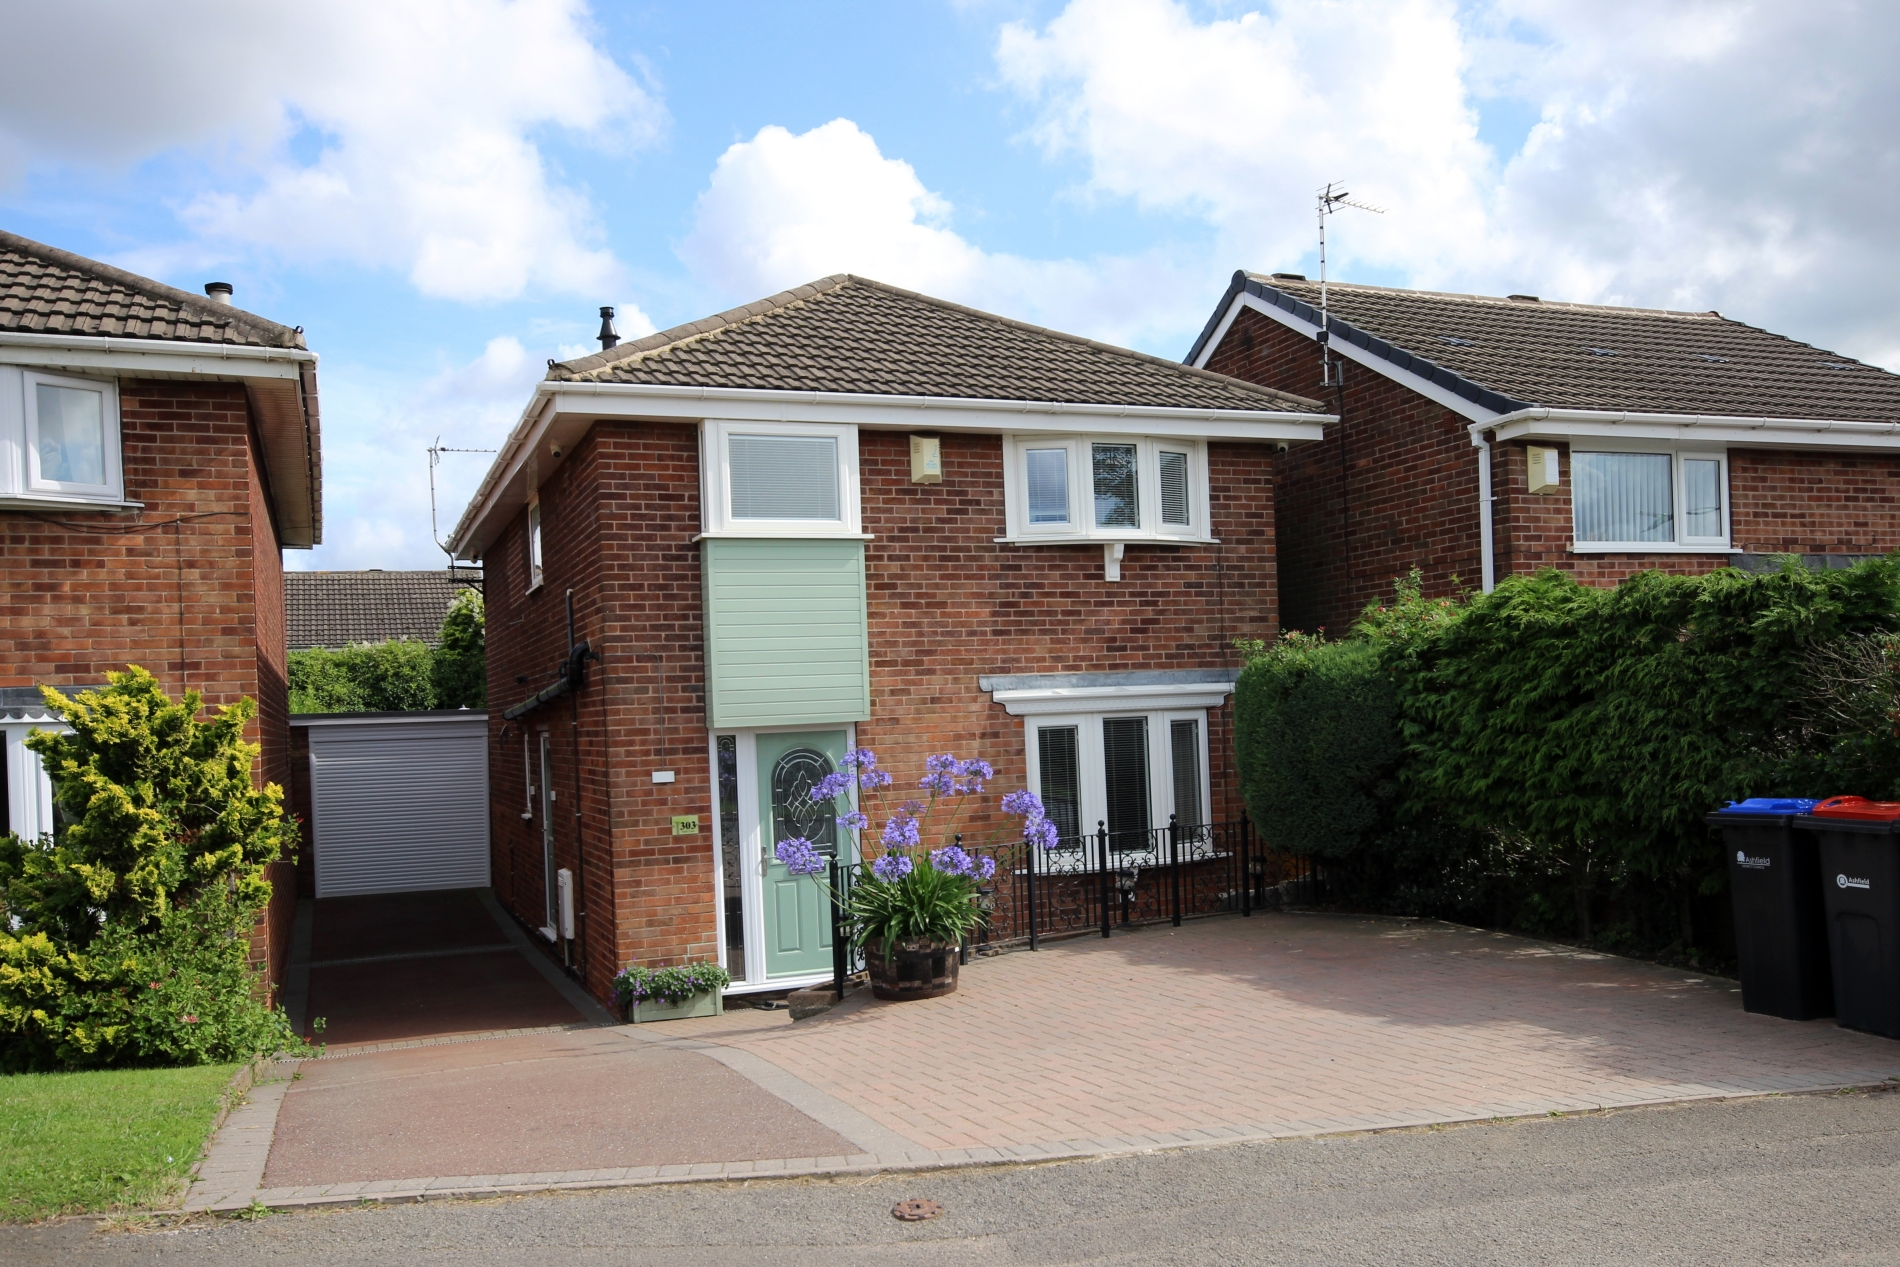 IT'S GONE! £189,500 Park Lane, Selston, Nottinghamshire, NG16 6JG - 2 BEDROOM DETACHEDLuxurious living in this stunning detached home! Renovated to a high standard throughout it includes: two superb bedrooms each with an en-suite, beautiful dining kitchen, spacious lounge and conservatory, plus off road parking, garage and much more! EPC rating TBC.